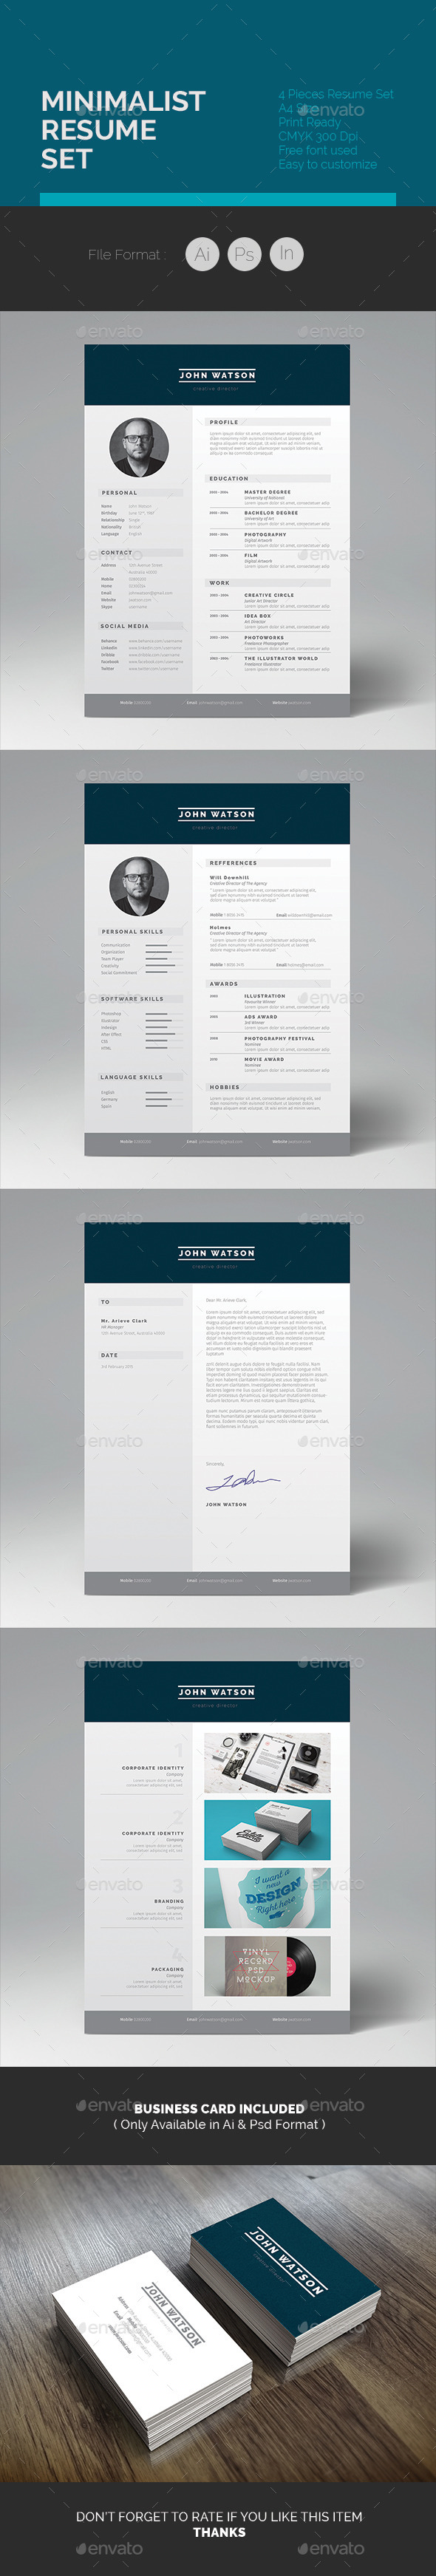 GraphicRiver Minimalist Resume Set 10325003